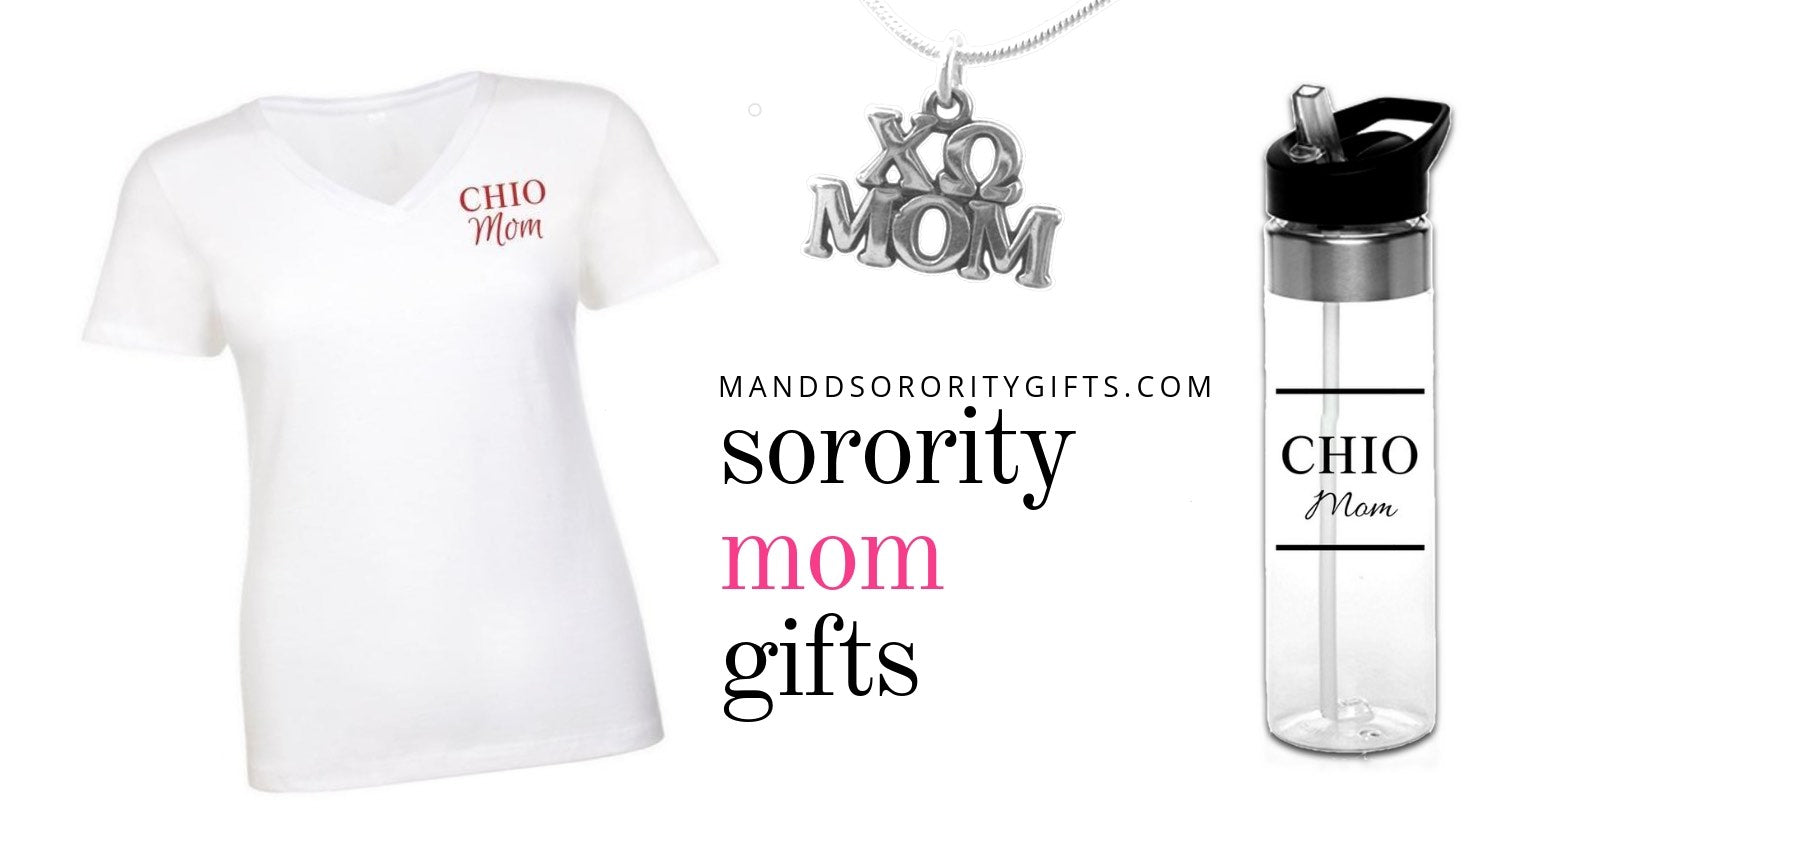 Chi Omega Mom Gifts I 12 Reasons Moms Are the Best